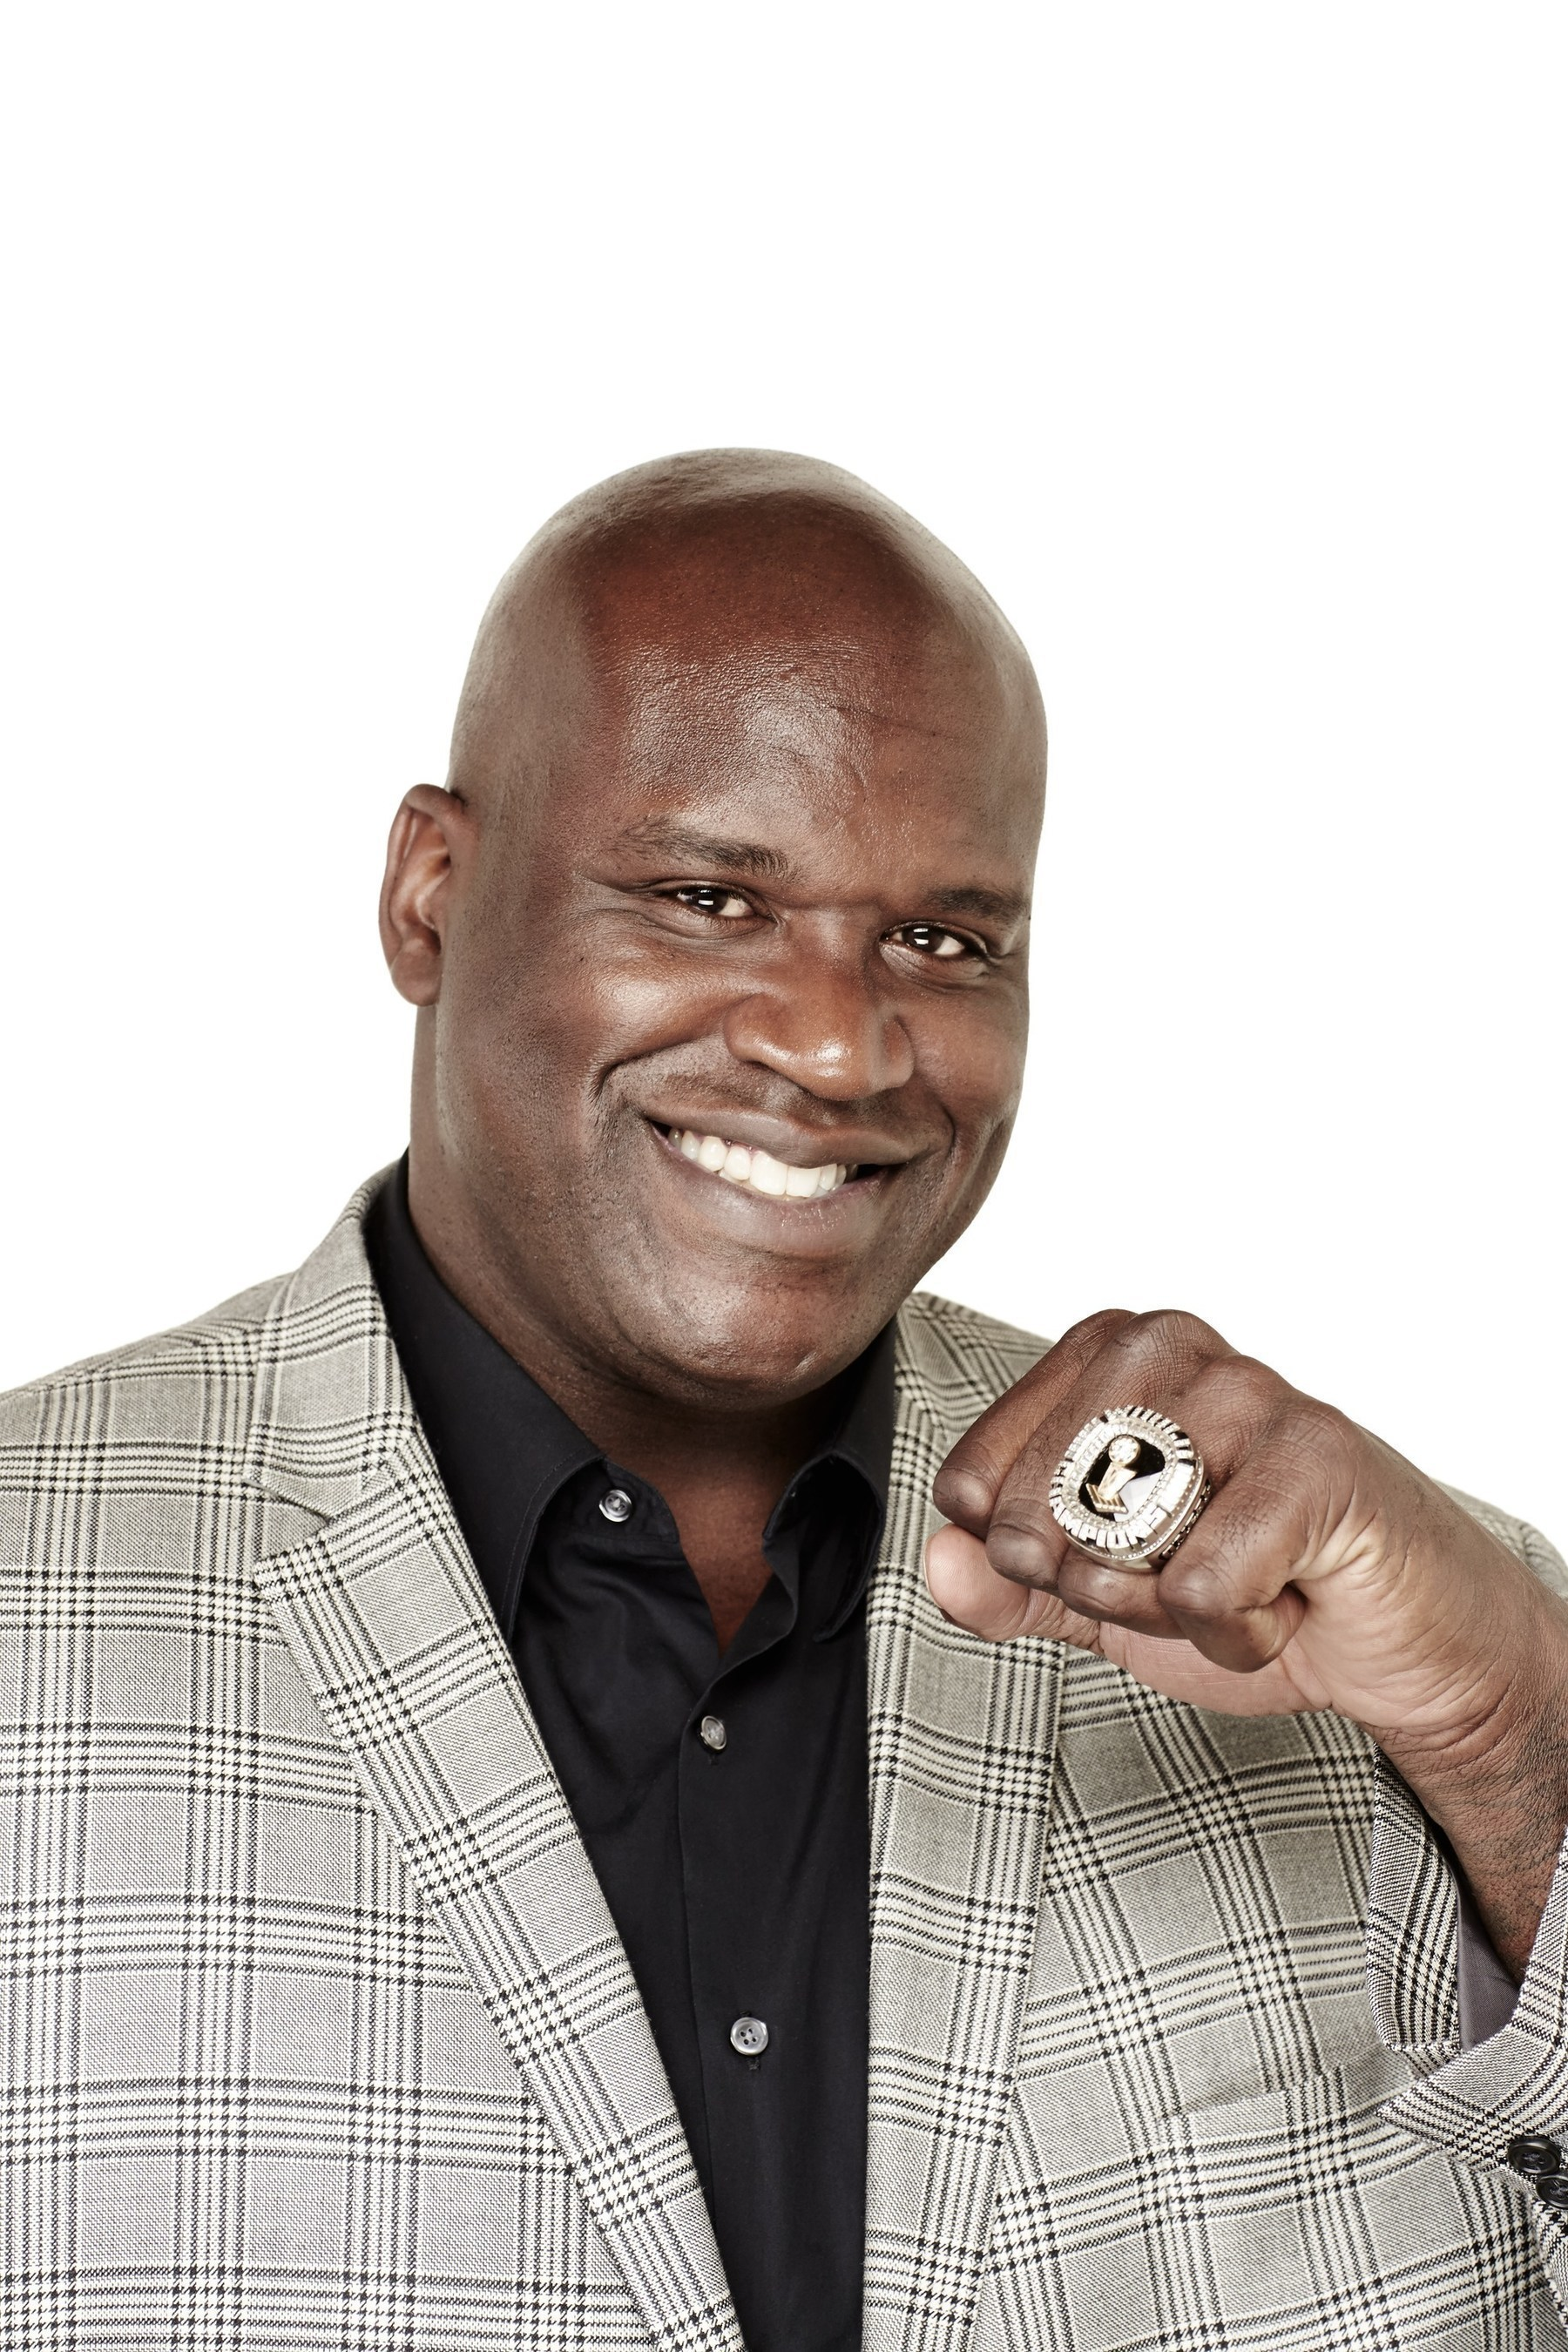 Basketball Legend: Shaquille O'Neal